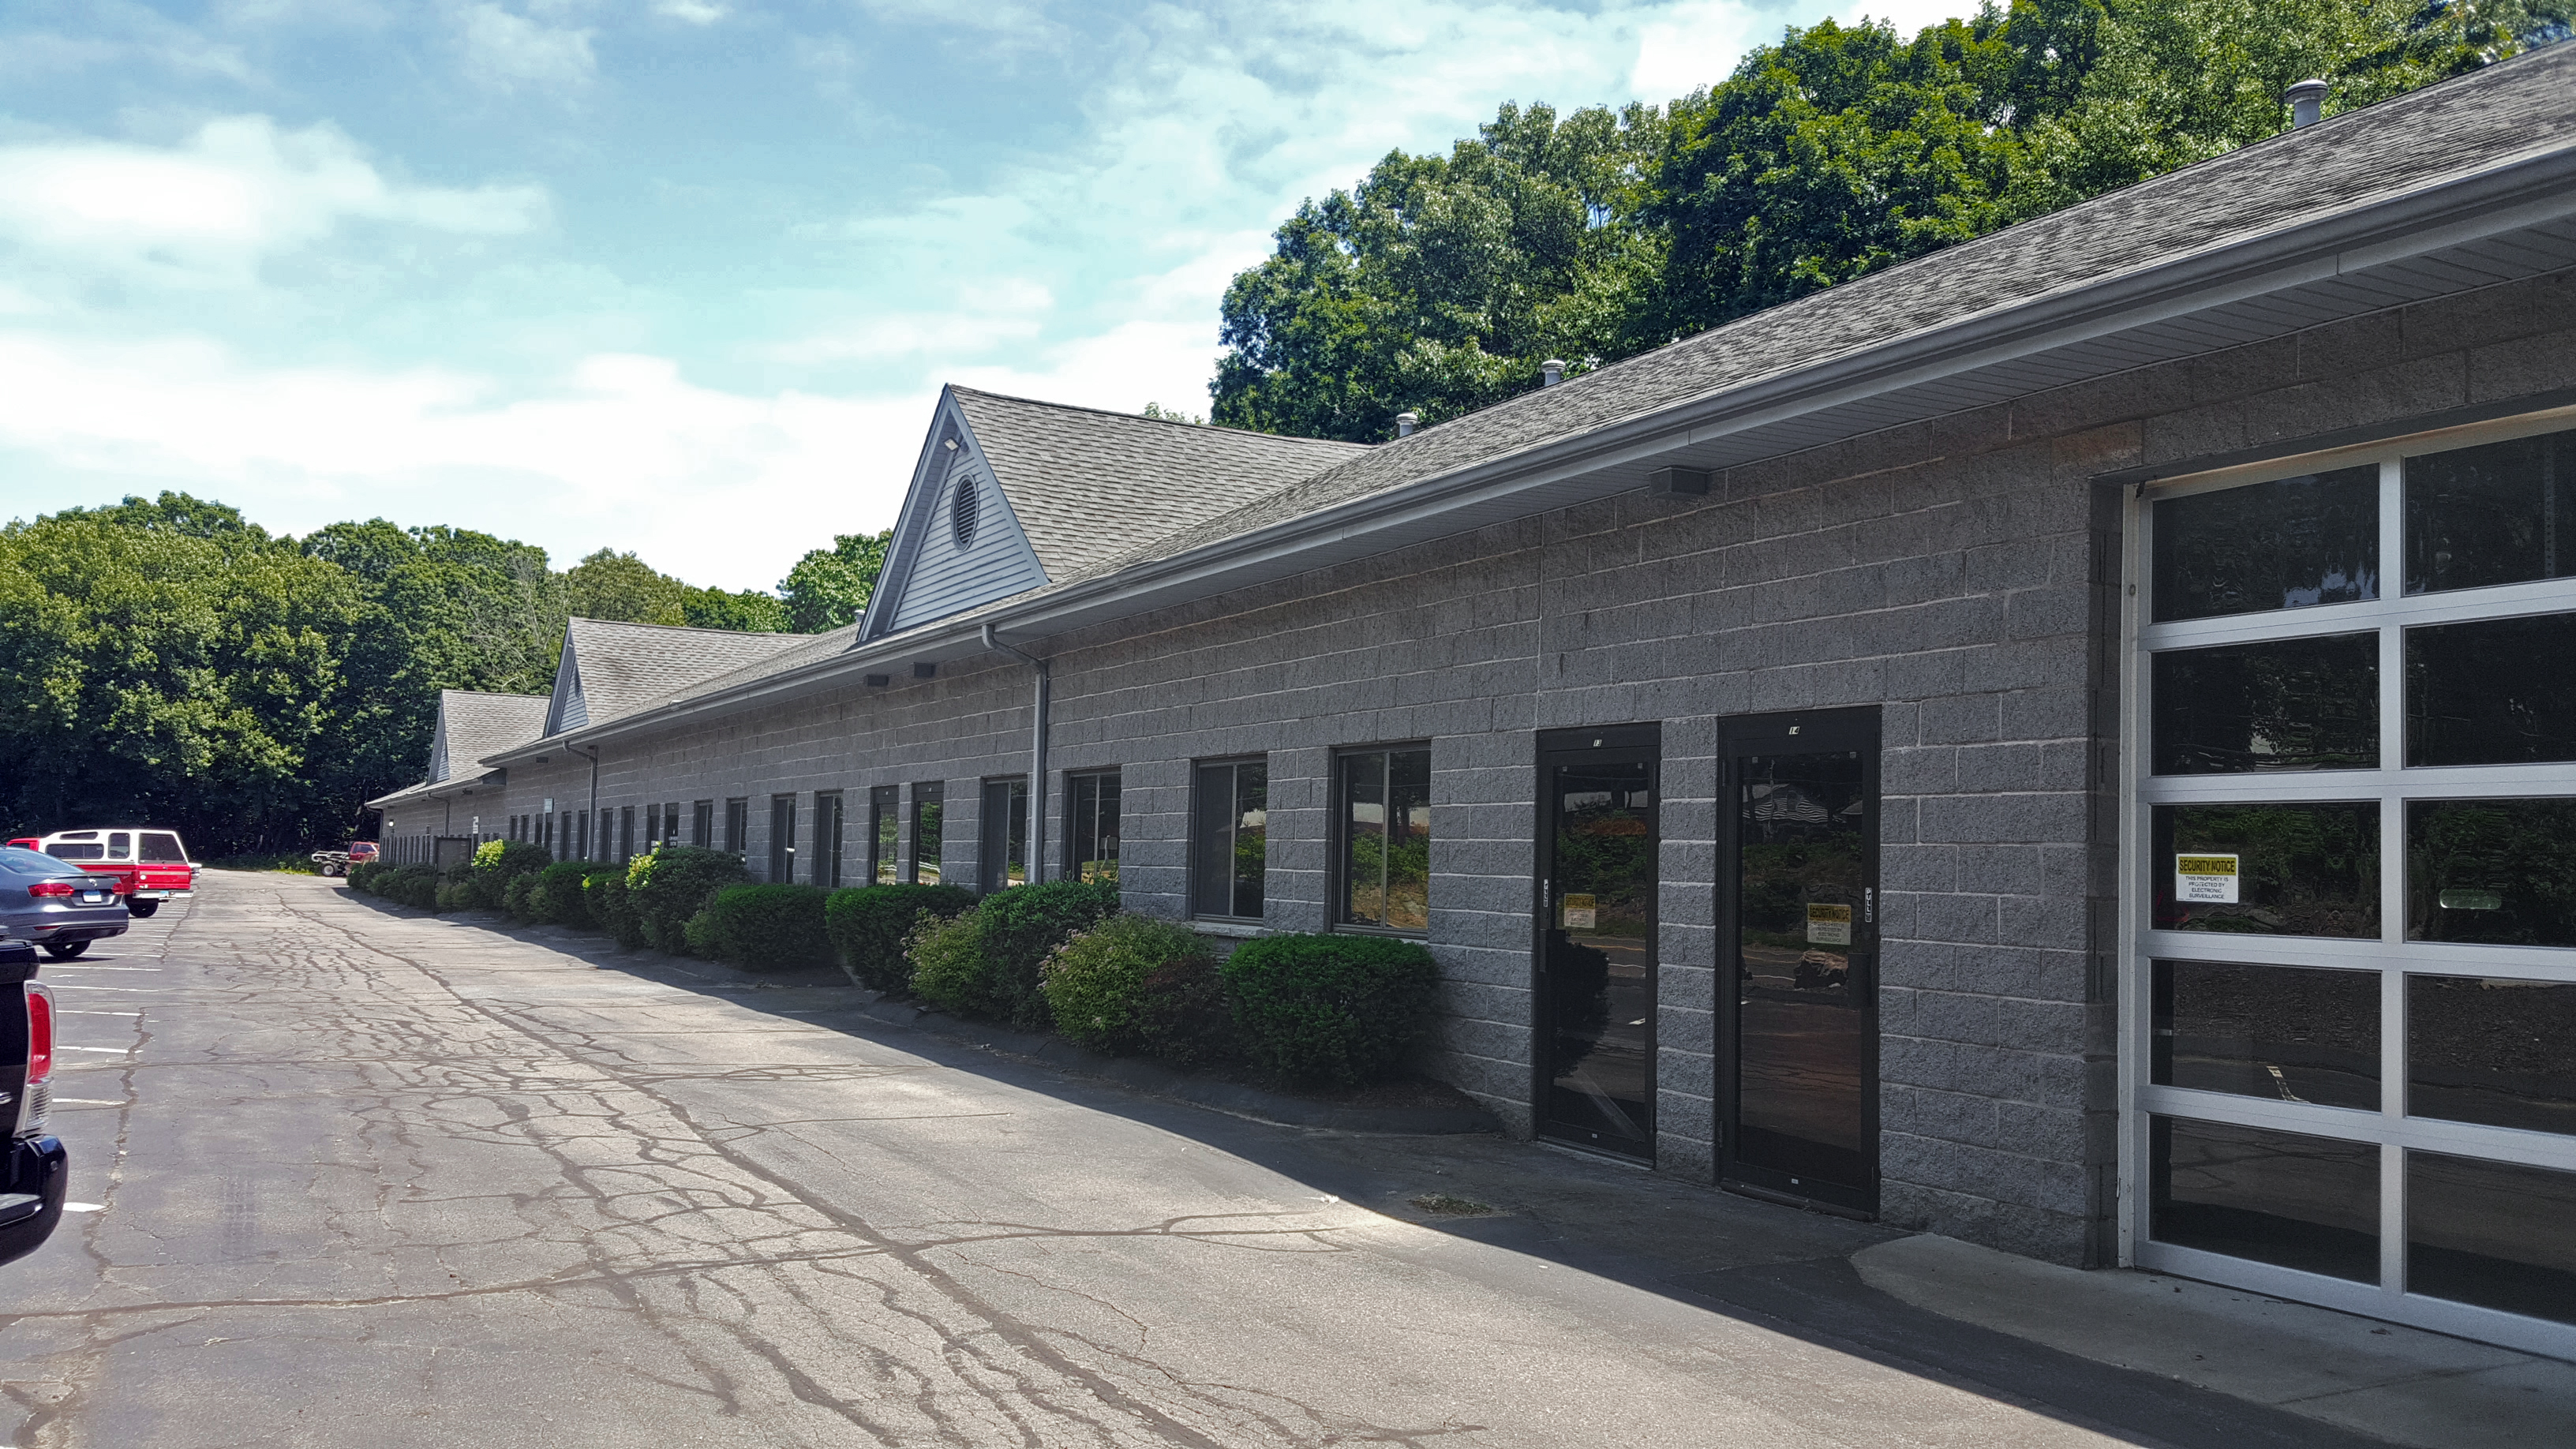 112 Nod Road, Clinton, Connecticut, ,Office,For Sale,Nod Road,1042